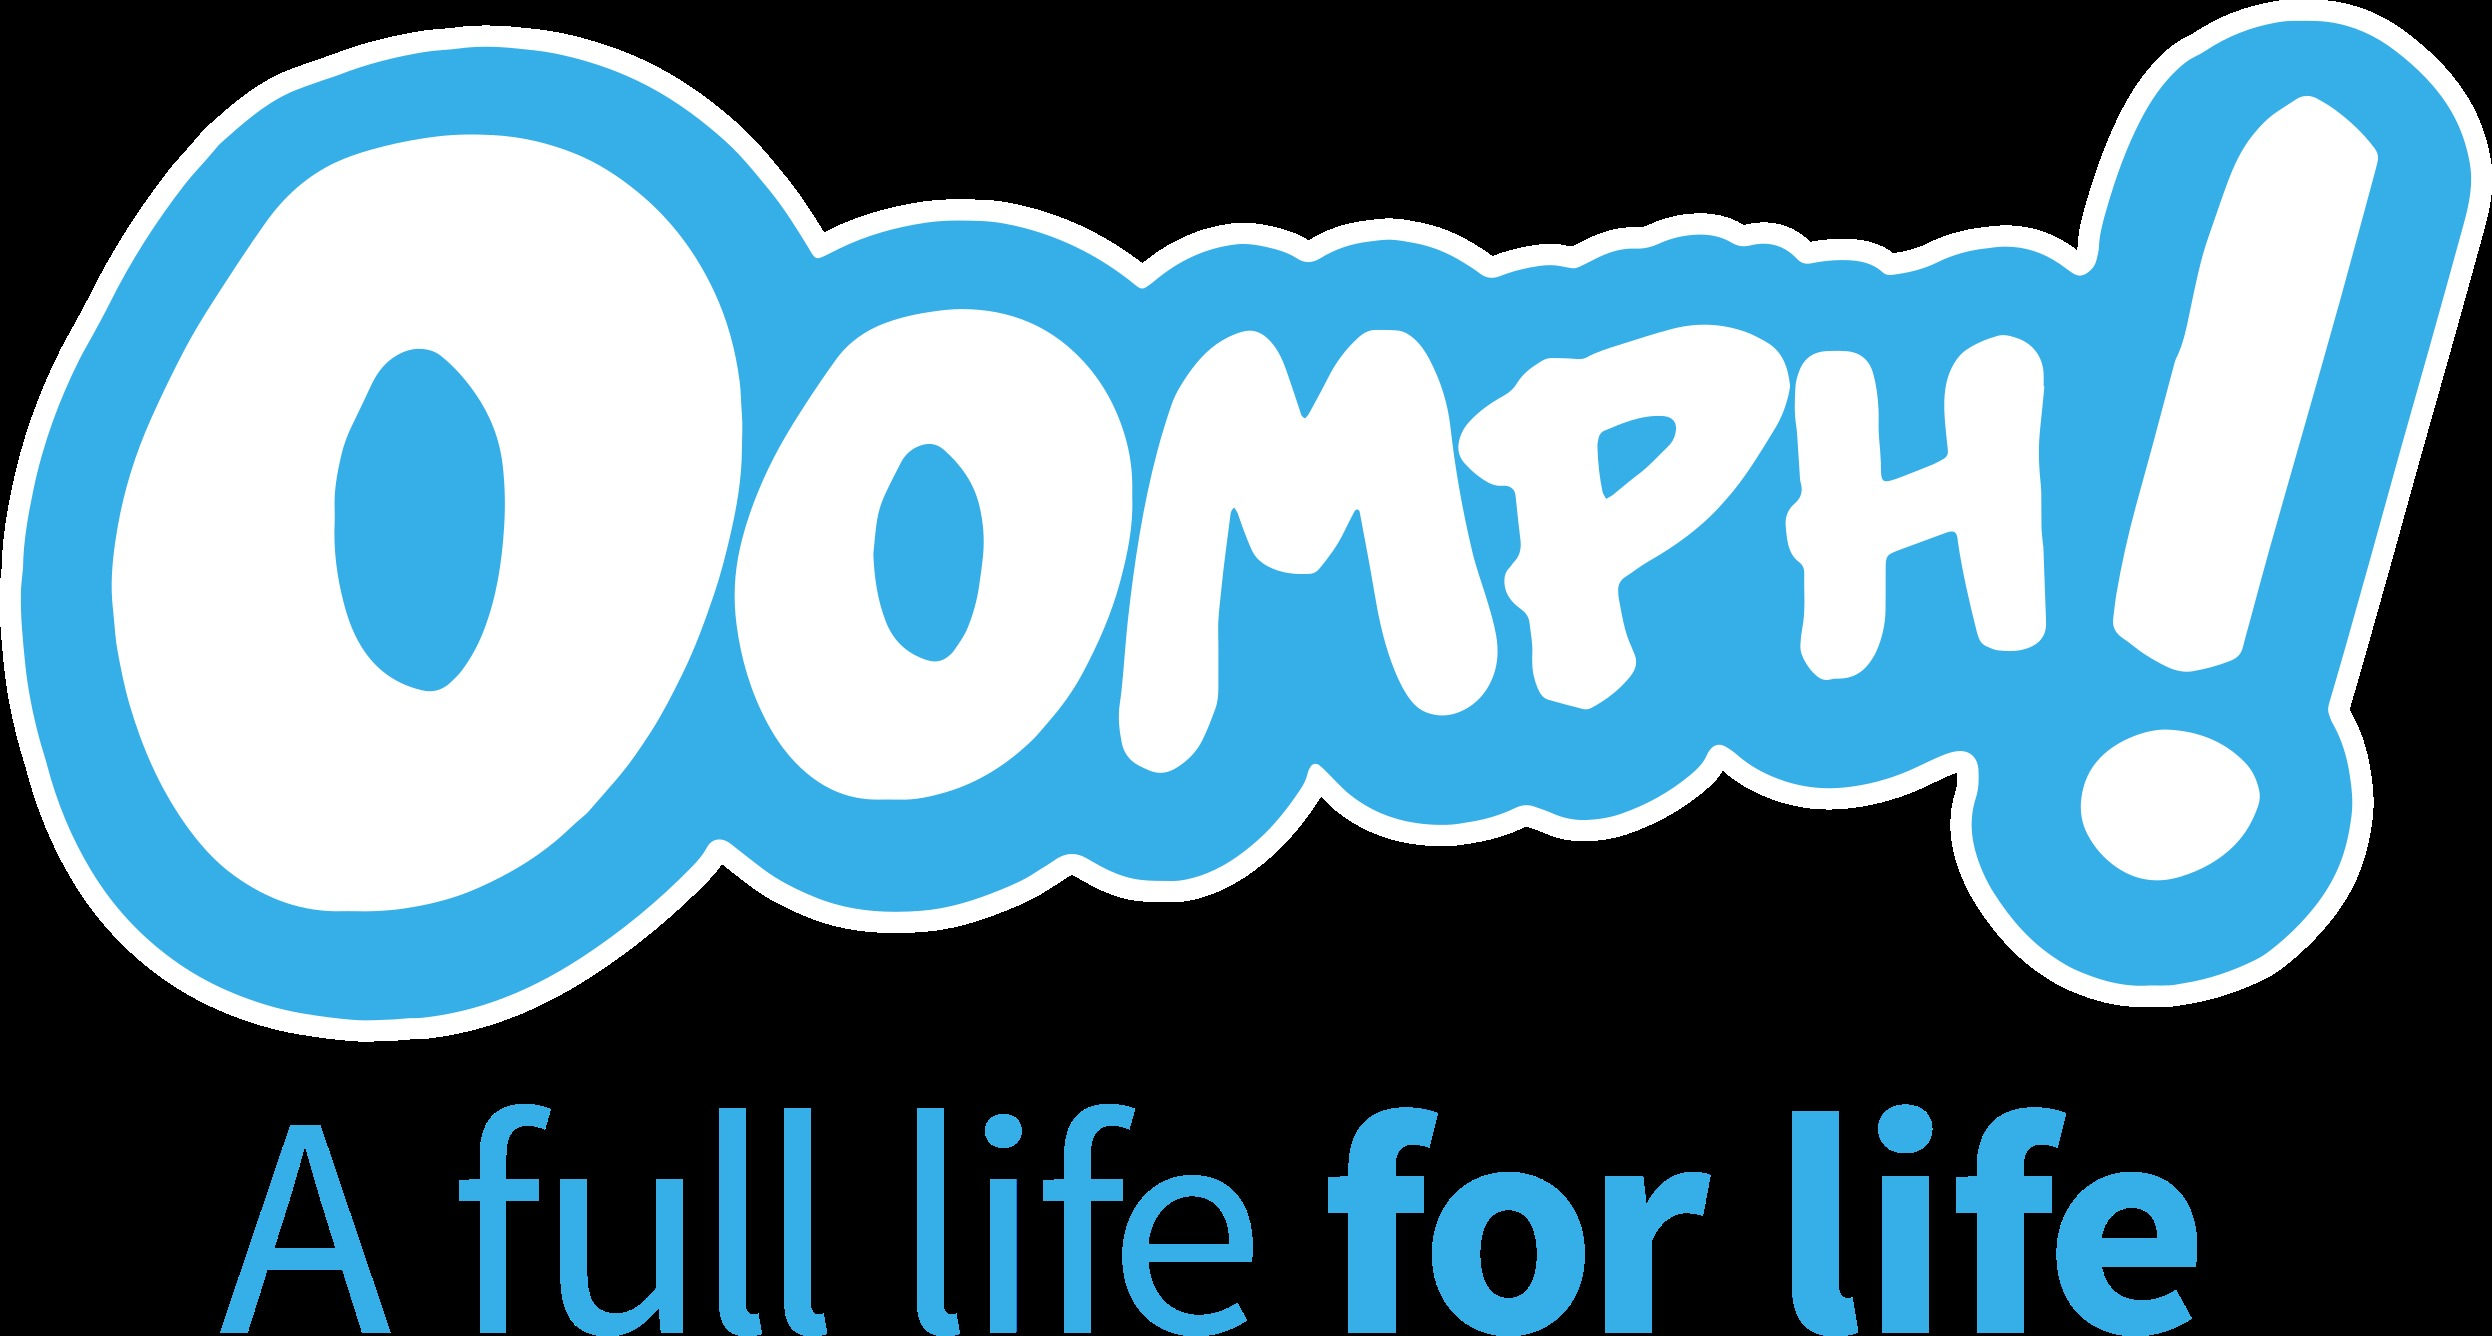 Oomph_-White-keyline-logo-with-blue-proposition-line-_1_.jpg